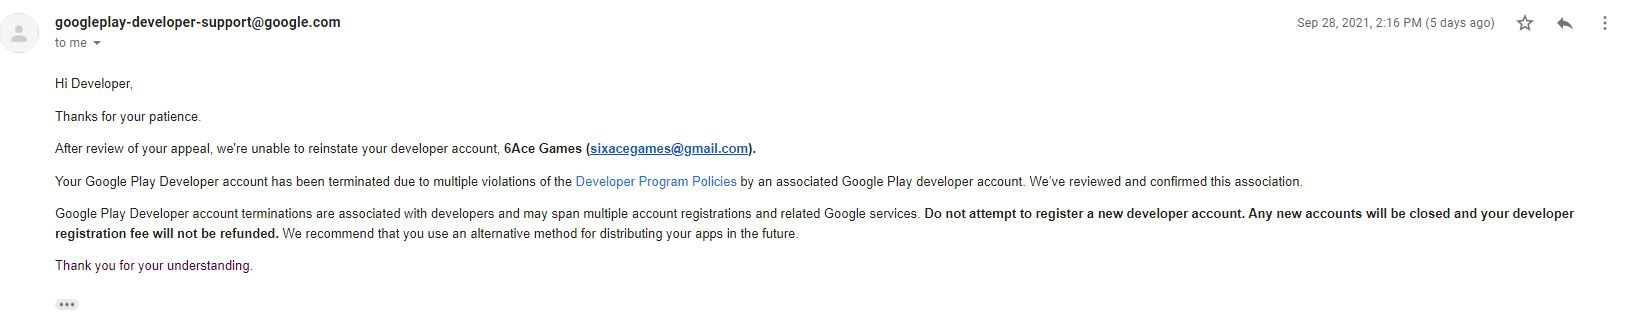 Screenshot of an email from Google Play Developer Support. Hi Developer. Thank you for your patience. After review of your appeal, we're unable to reinstate your developer account. Your Google Play developer account has been terminated due to multiple violations of the Developer Program Policies by an associated Google Play developer account. We've reviewed and confirmed the association. Google Play Developer account terminations are associated with developers and may span multiple account registrations and related Google services. Do not attempt to register a new developer account. Any new accounts will be closed and your developer registration fee will not be refunded. We recommend that you use an alternative method for distributing your apps in the future. Thank you for your understanding.